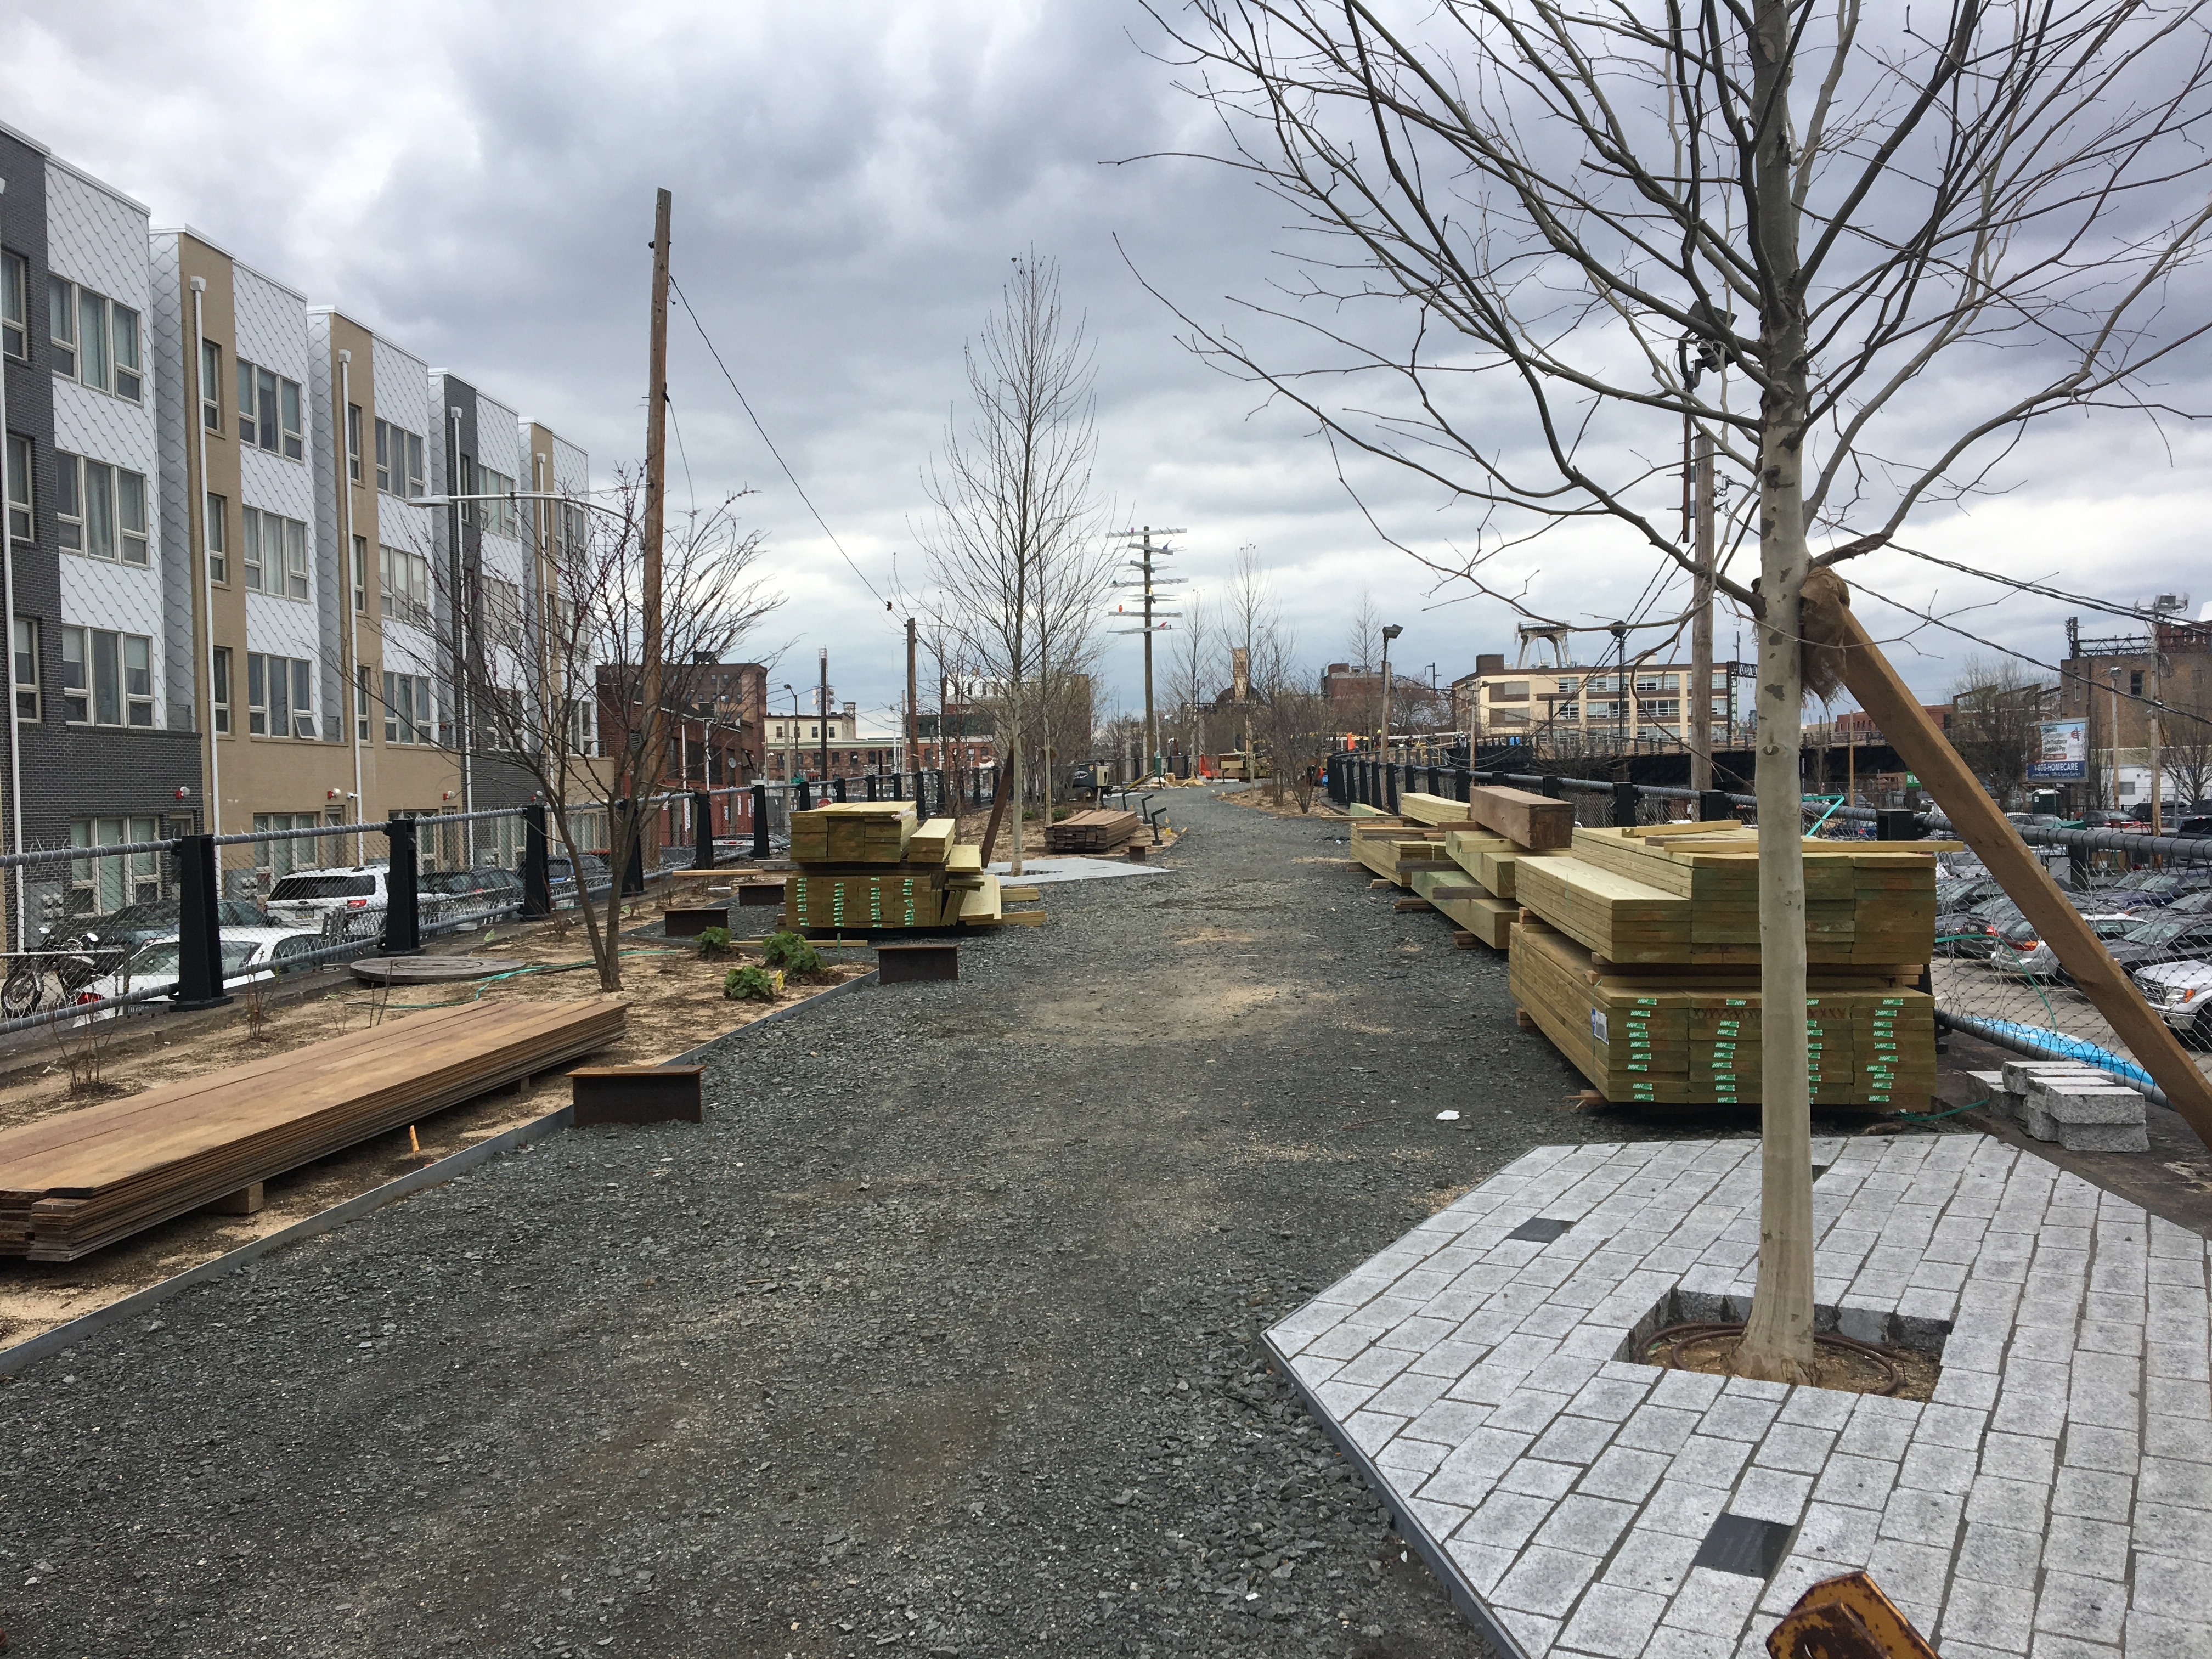 The first section of the Rail Park, the former spur from Broad Street to the old Reading Viaduct, is nearing completion and will open in June.